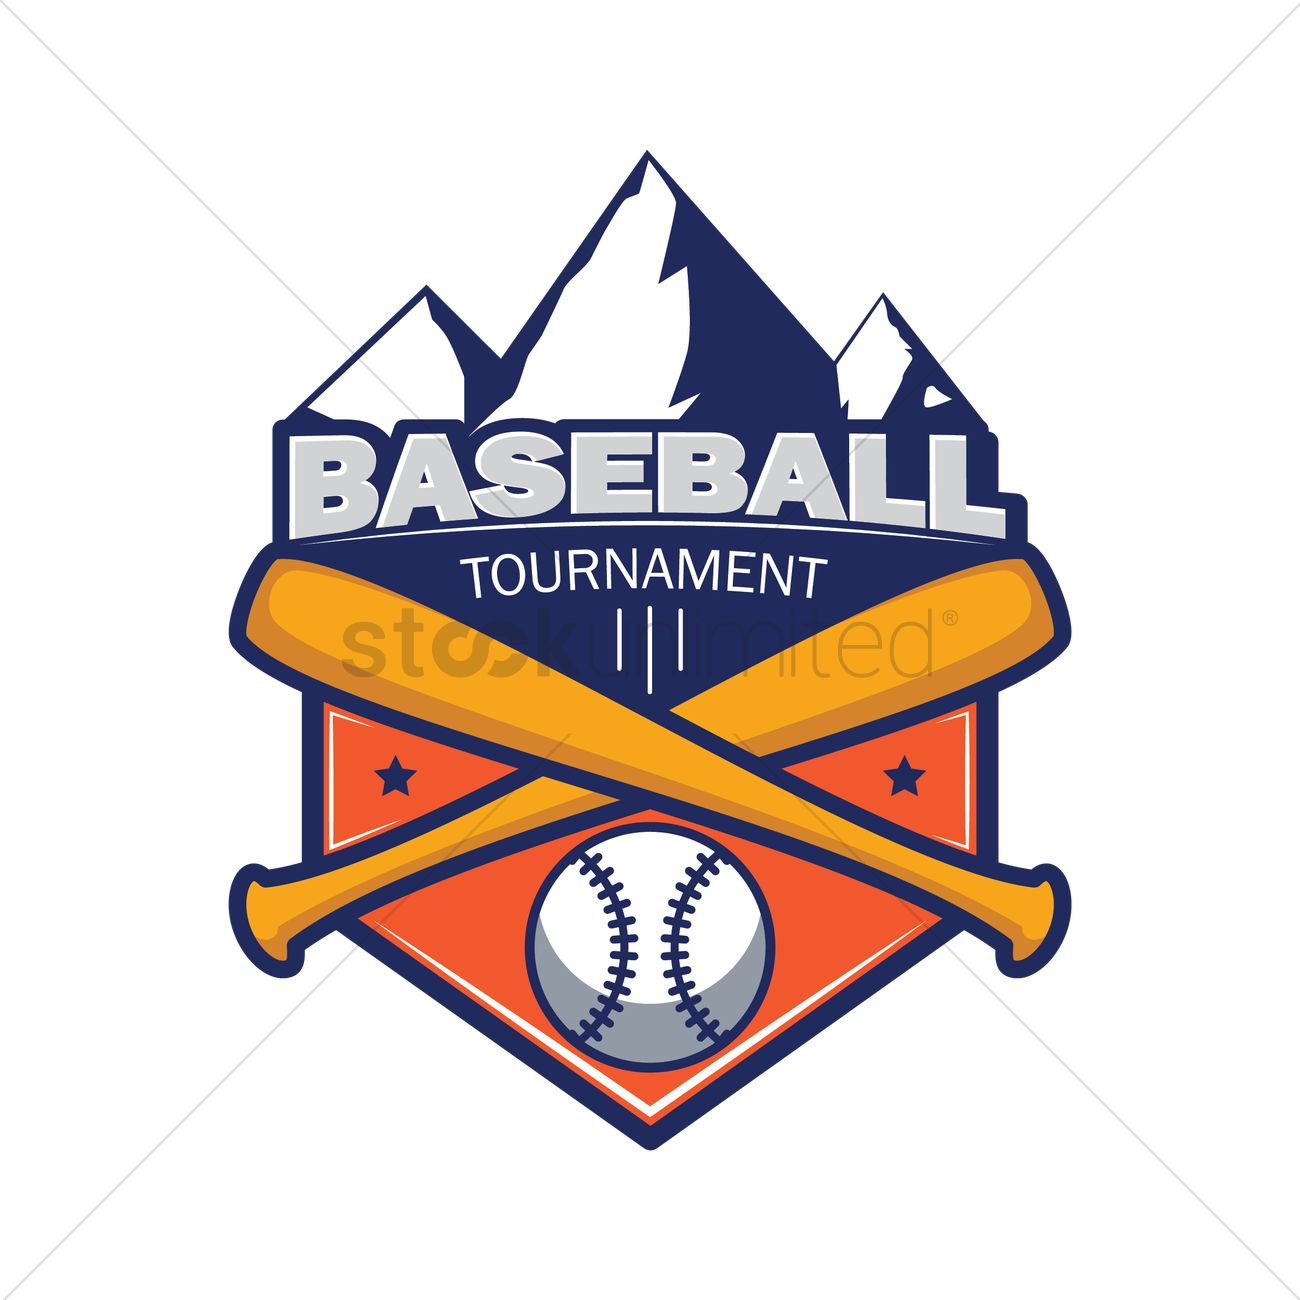 Baseball tournament badge Vector Image.